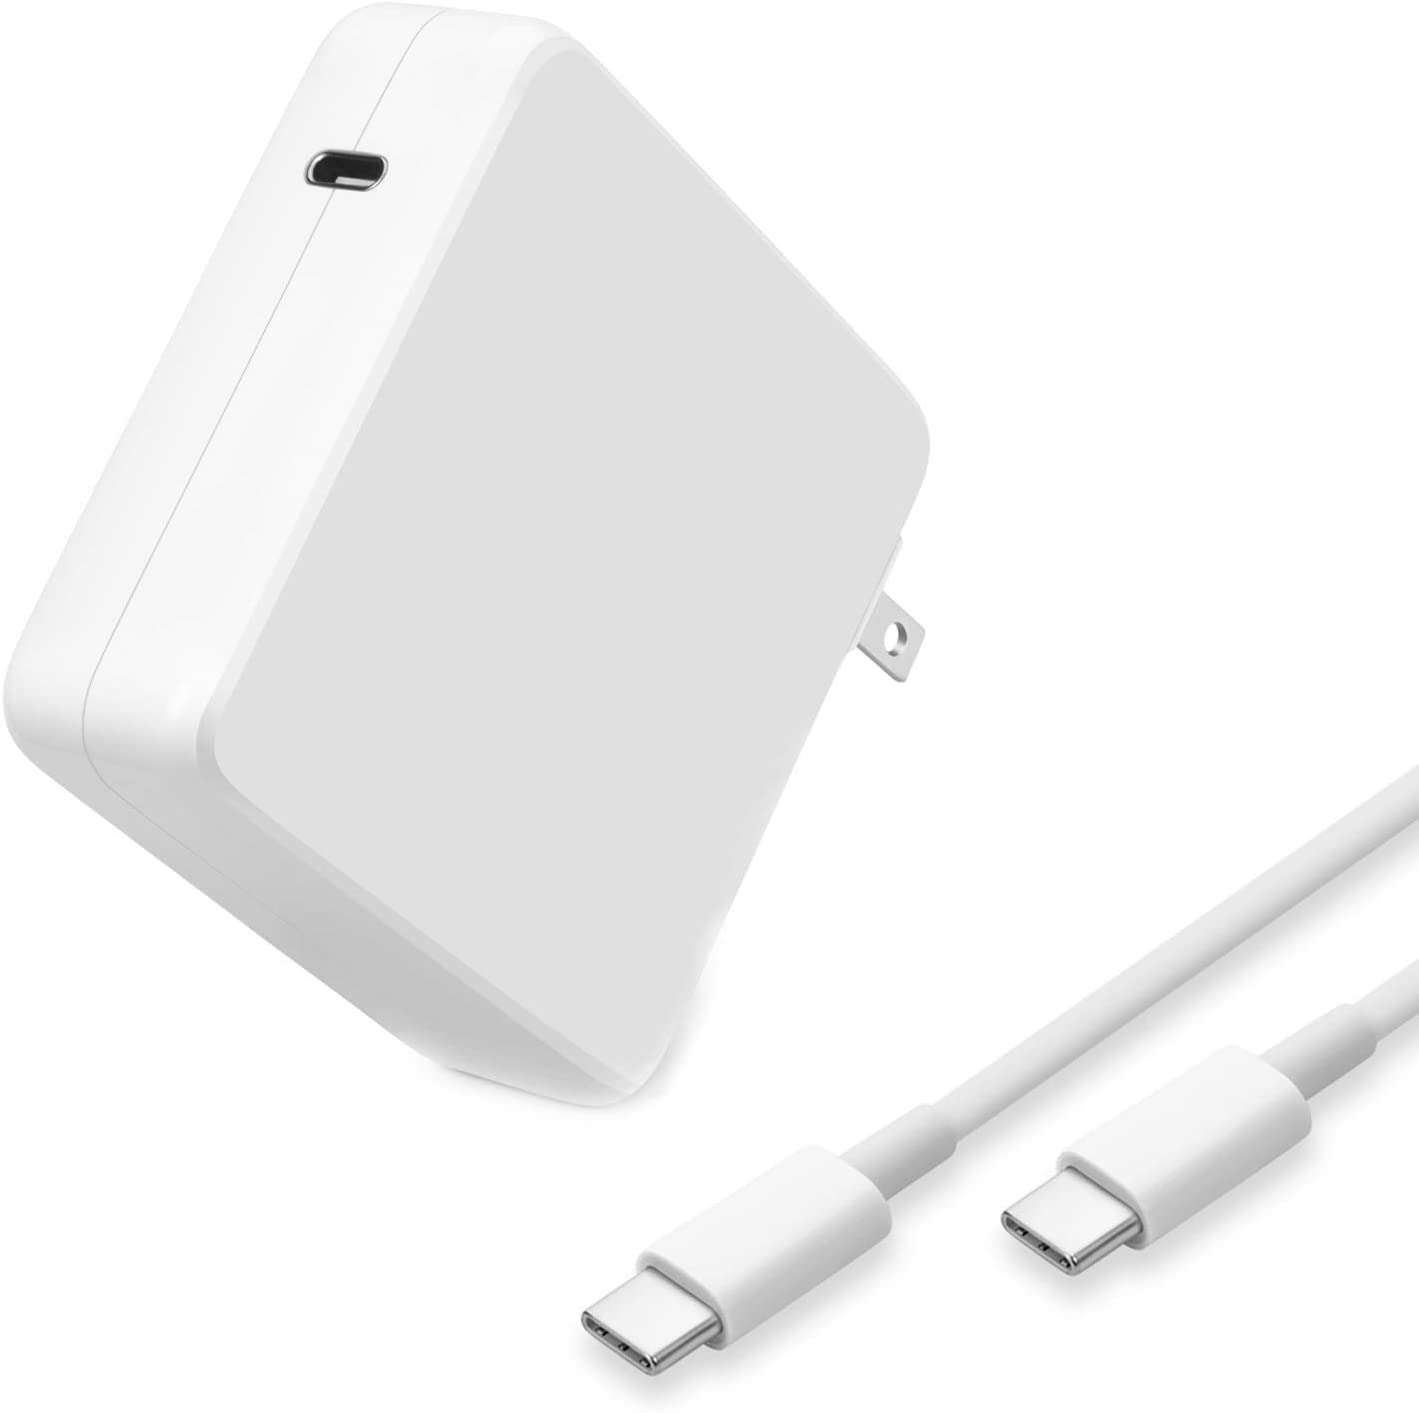 96W USB C Charger Power Adapter for Mac Book Pro 16, 15, 13 inch, New Mac Air 2020/2019/2018, USB C Thunderbolt 3 Laptop Power Supply, Type C 6.5ft USB C to C Charge Cable